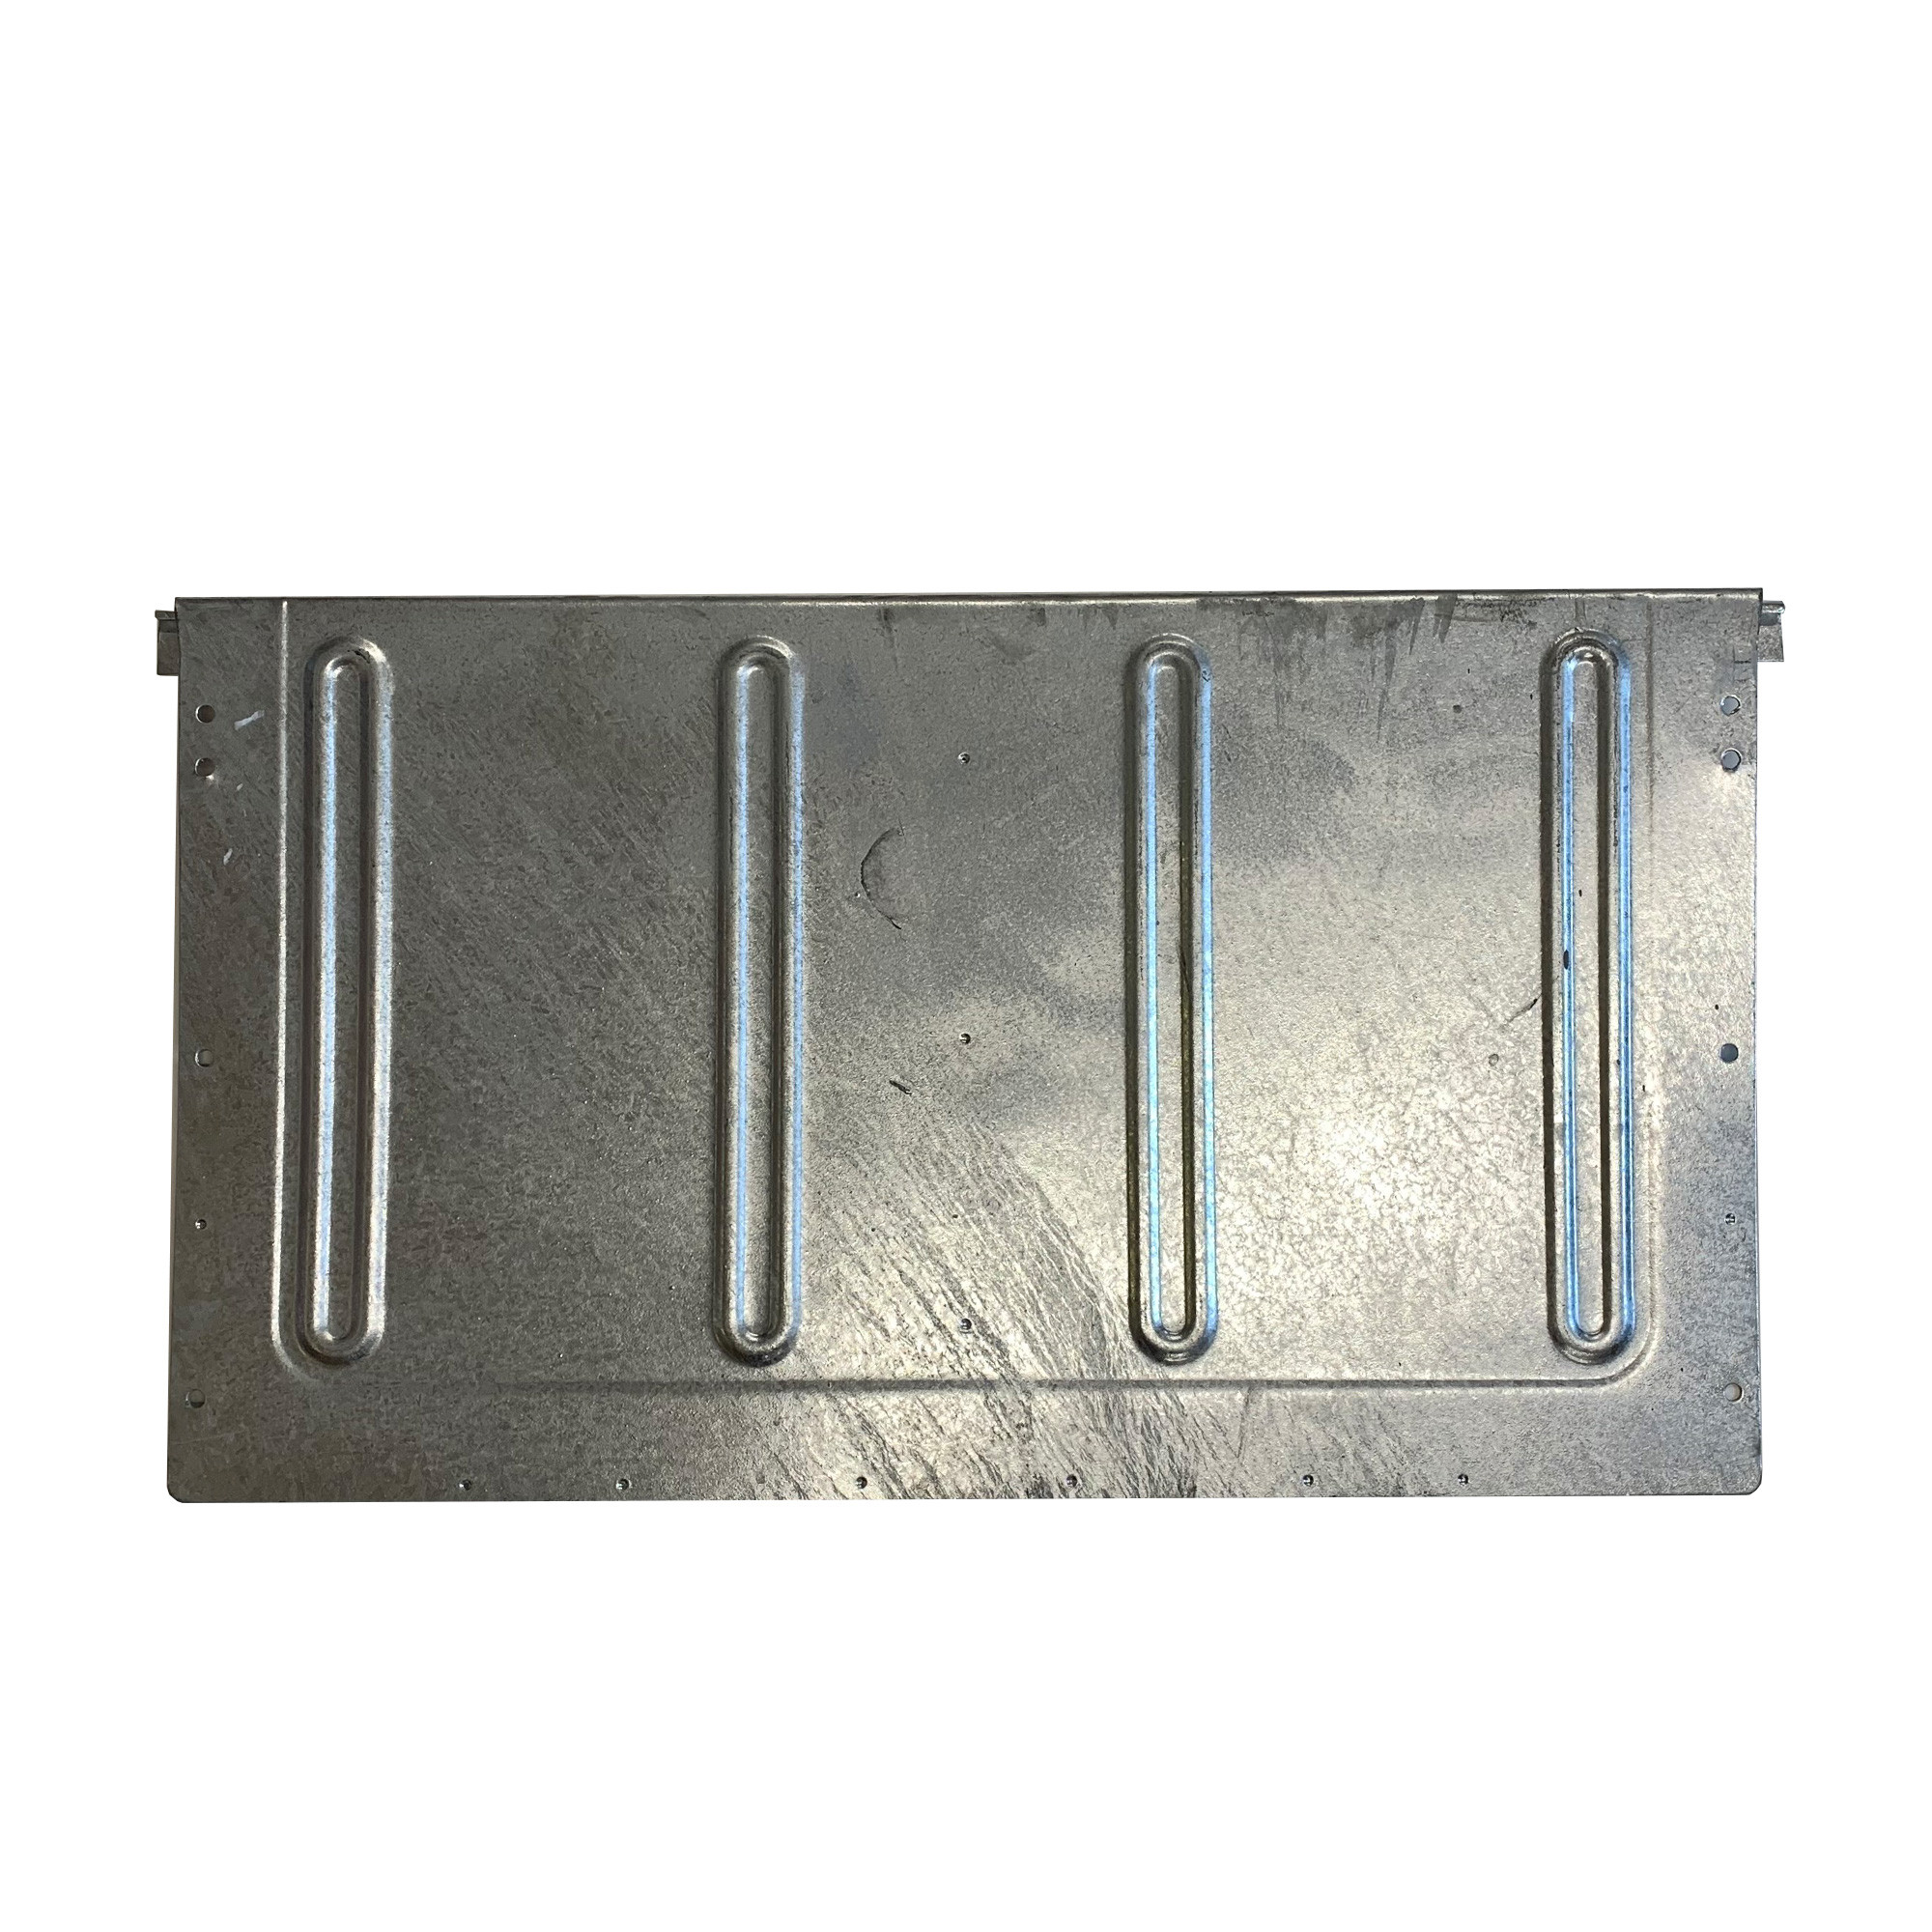 Reinforcment Panel Lower Tailgate Galvanised